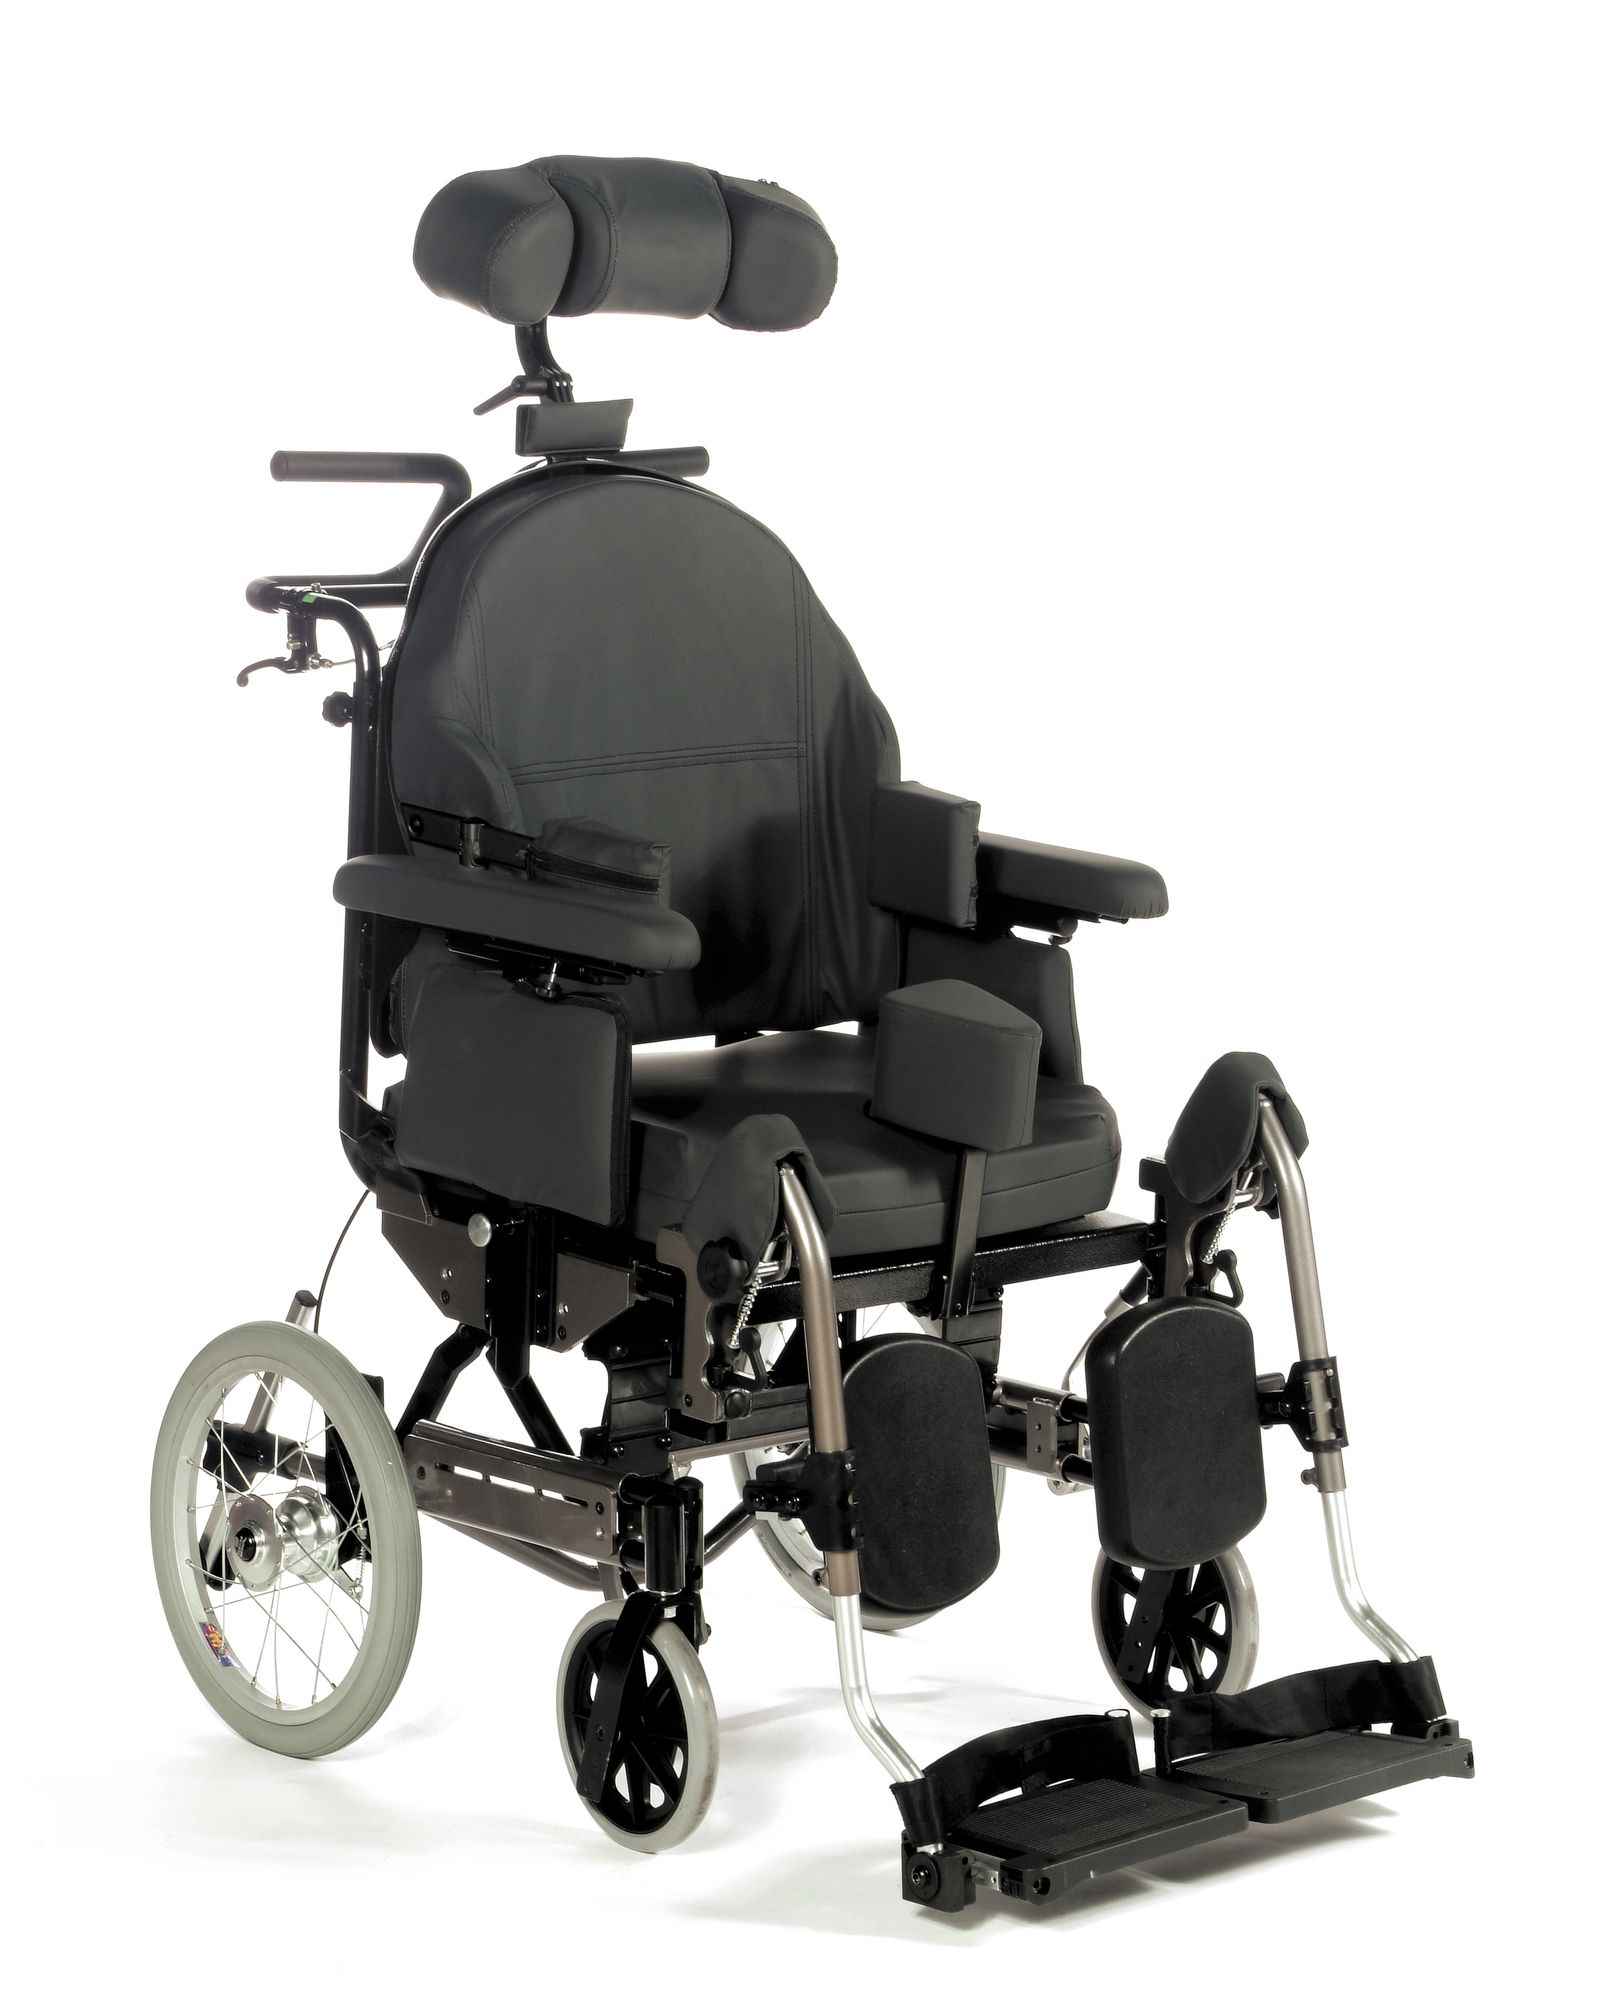 wheelchair harness best beach chairs 2017 uk seat get free image about